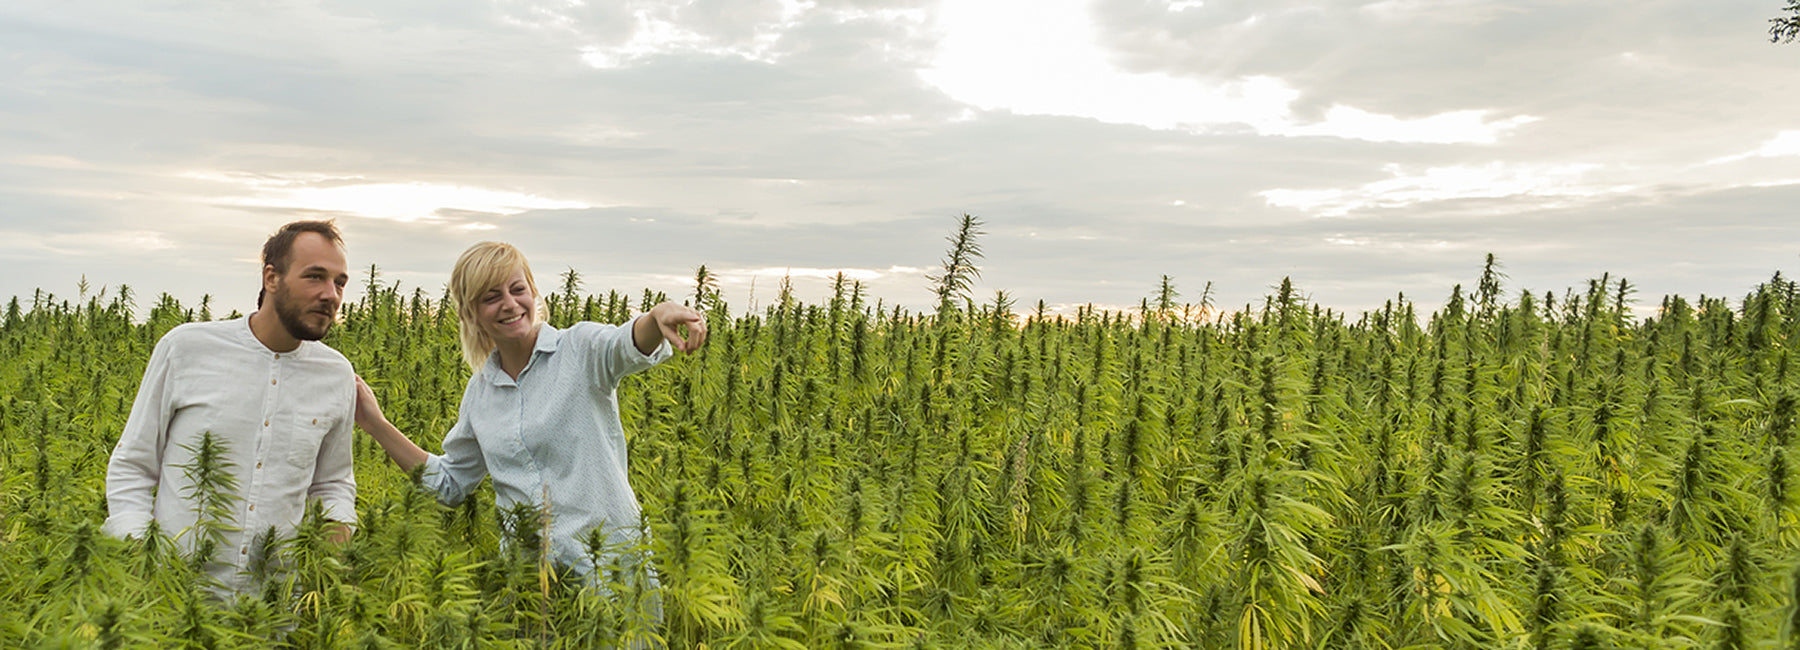 Man and woman standing in a hemp field testing the crop